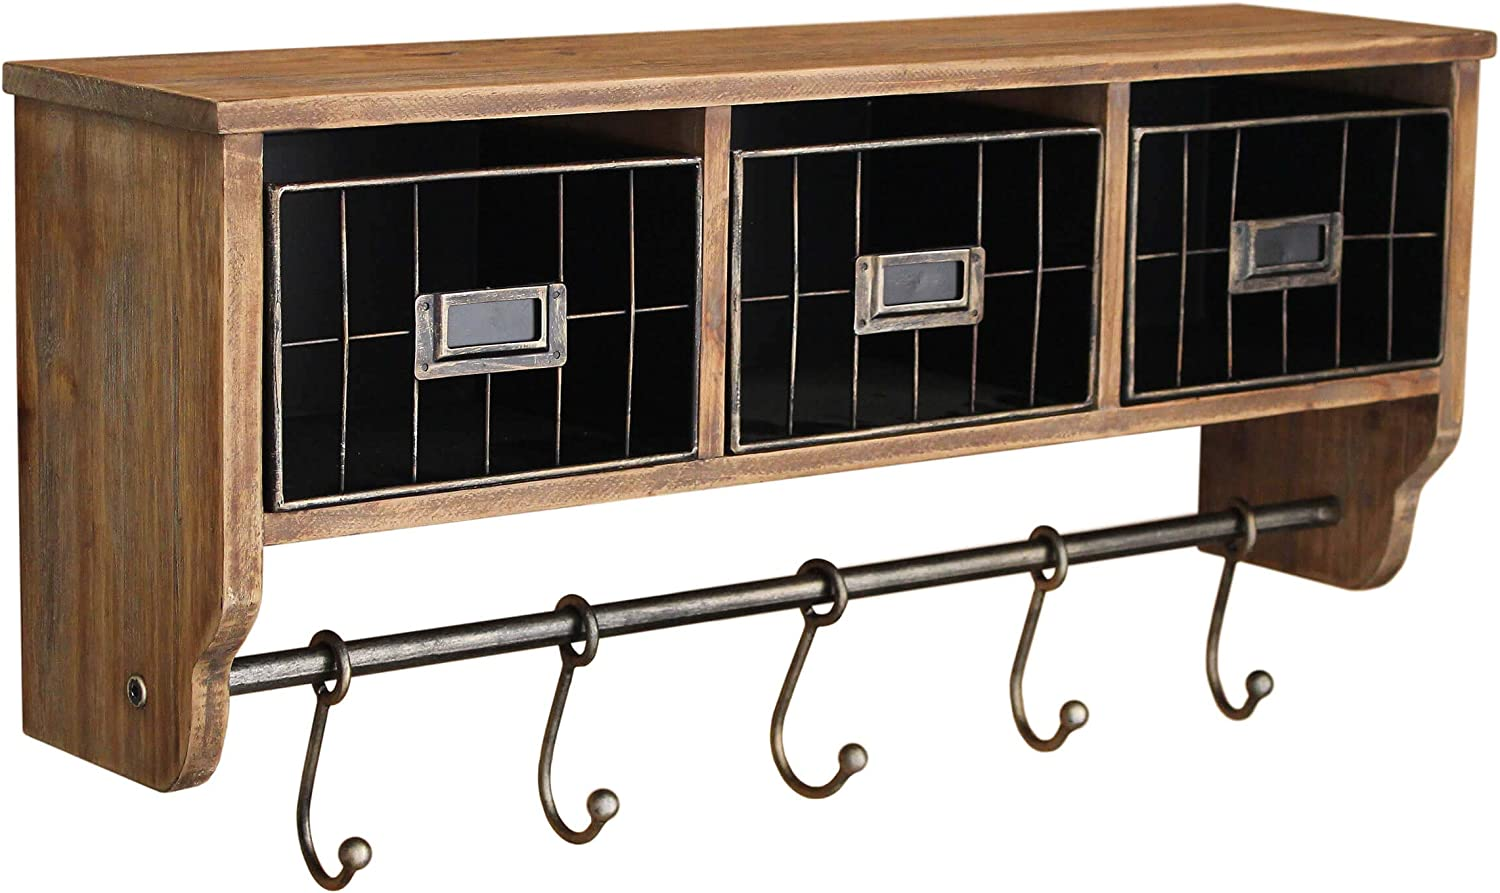 Rustic Coat Rack Wall Mounted Shelf with Hooks & Baskets, Entryway Organizer Wall Shelf with 5 Coat Hooks and Cubbies, Solid Wooden Shelf with Hooks - Hang Coats, Towels, Hats, Keys or Coffee Mugs!